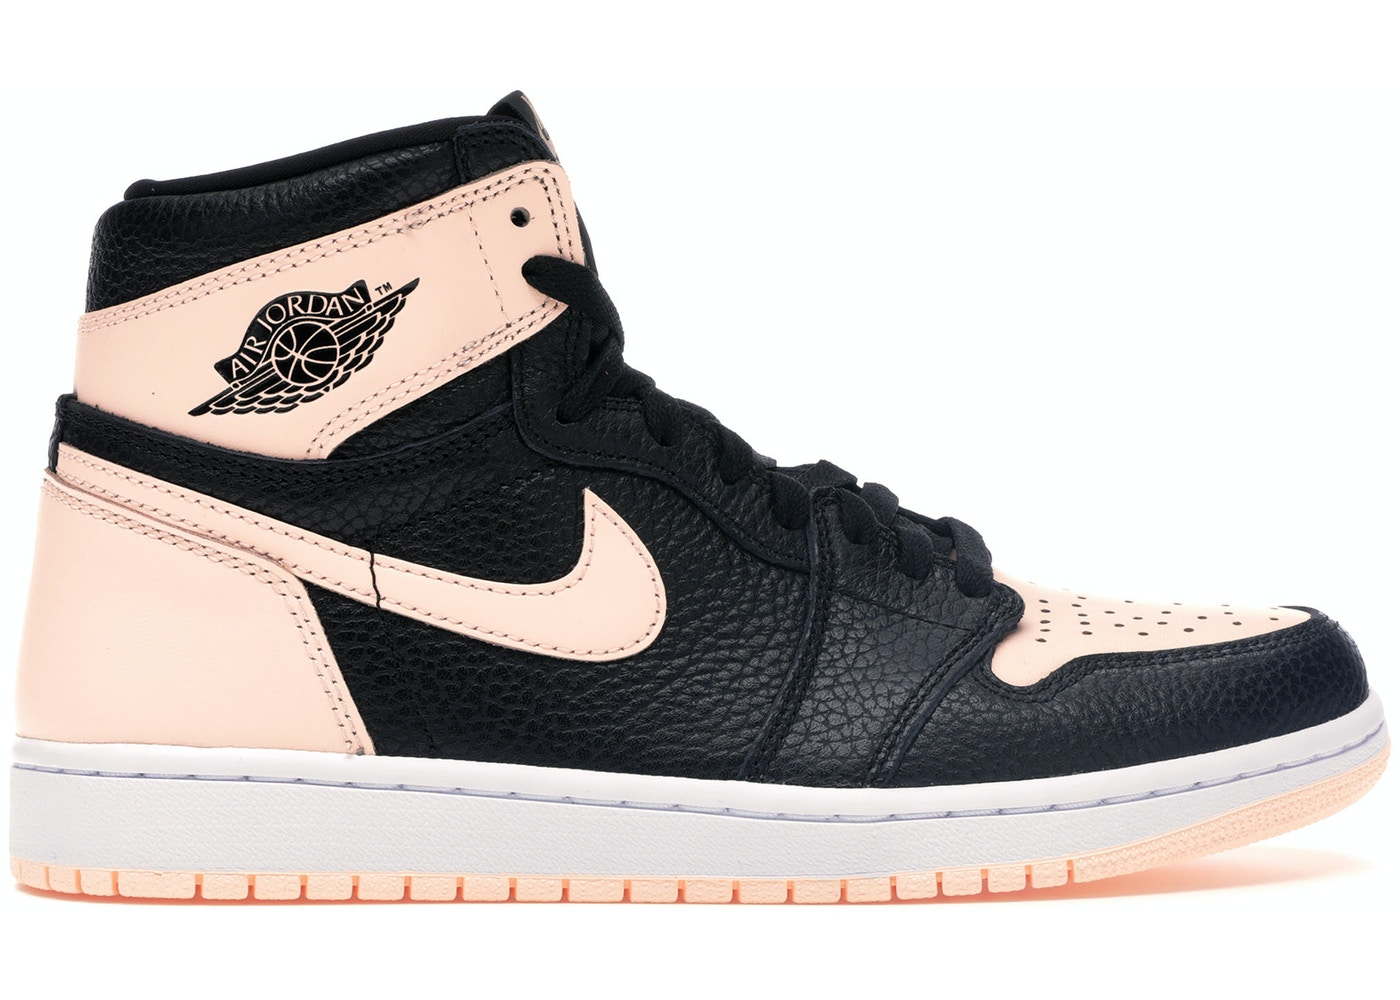 55ddc07291698d Jordan 1 Retro High Black Crimson Tint - 555088-081